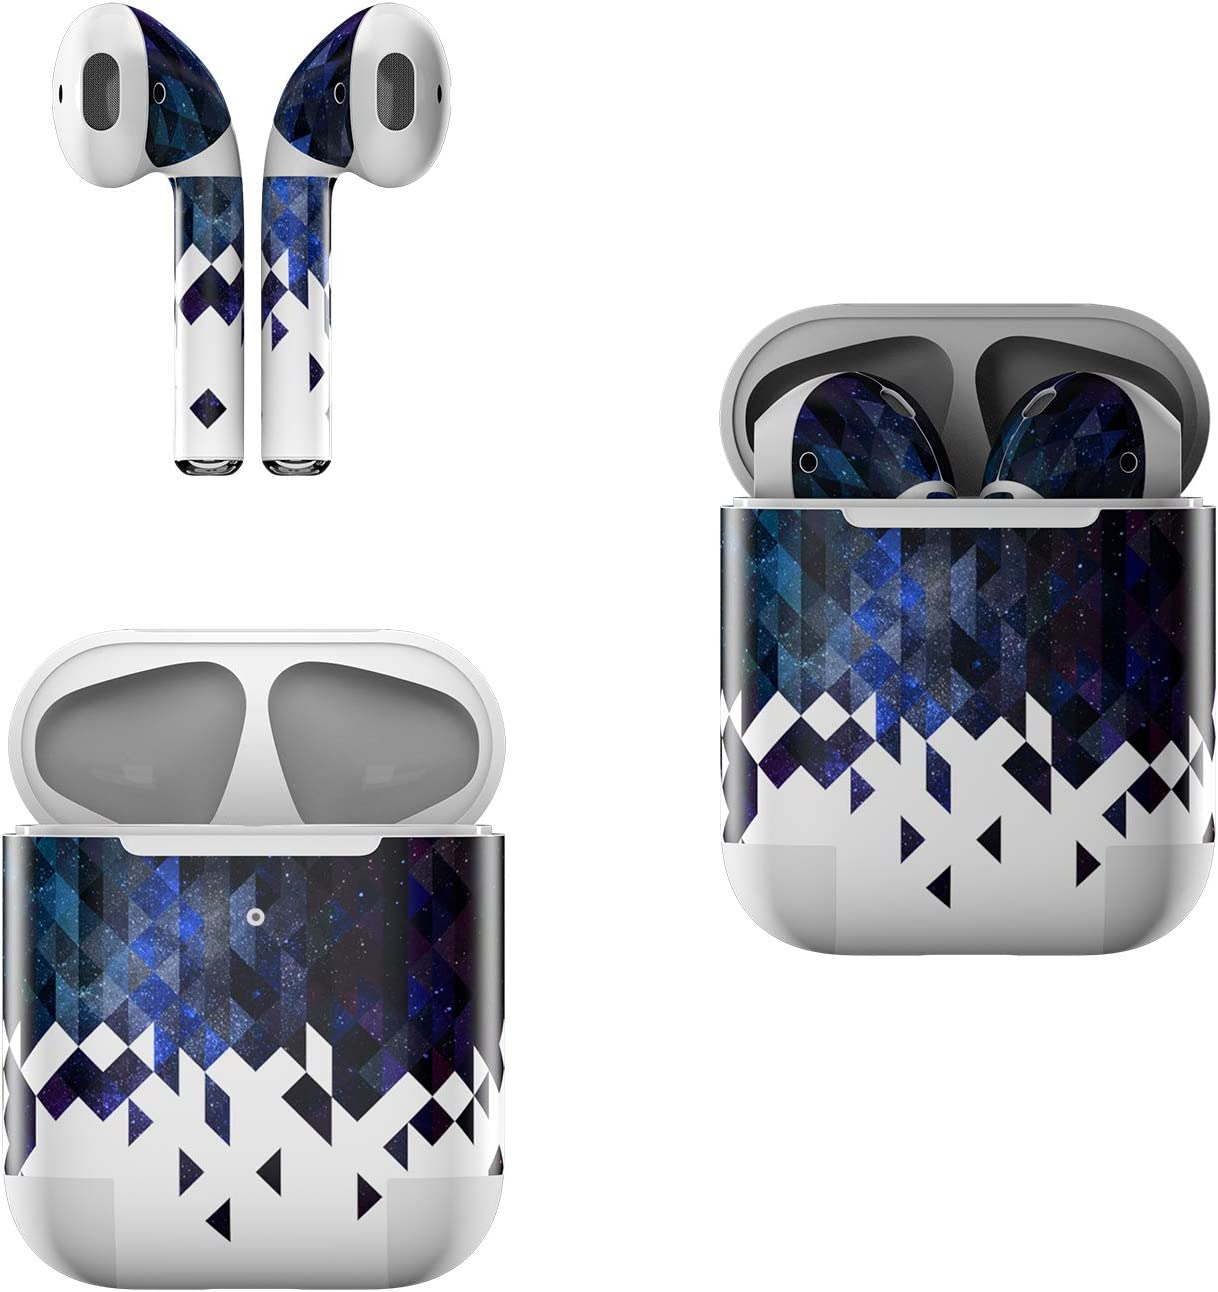 Skin Decals for Apple AirPods - Collapse - Sticker Wrap Fits 1st and 2nd Generation